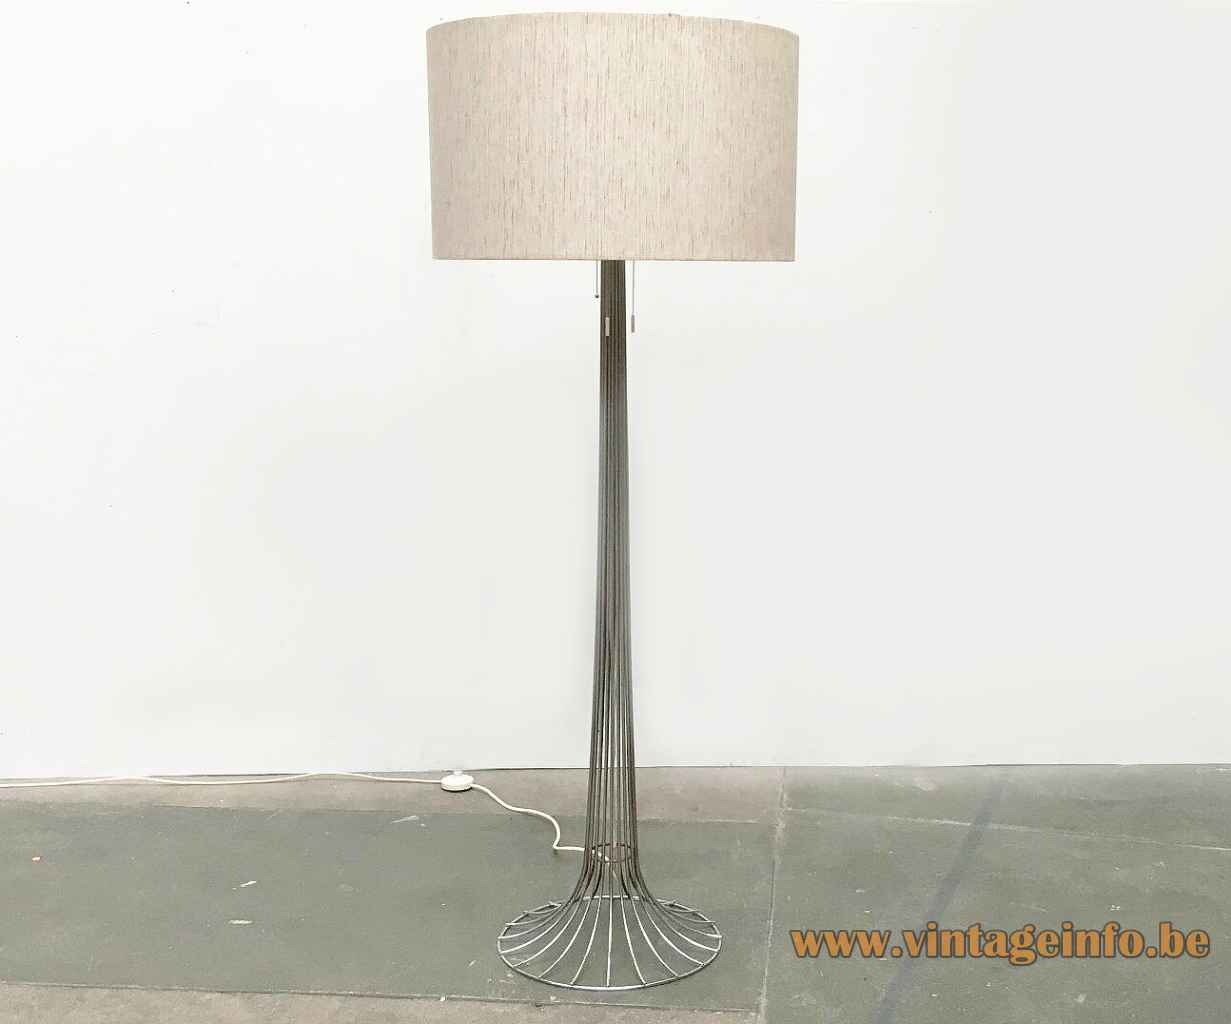 Kinkeldey chrome wire floor lamp round base fabric lampshade 4 E27 sockets 1960s 1970s Germany